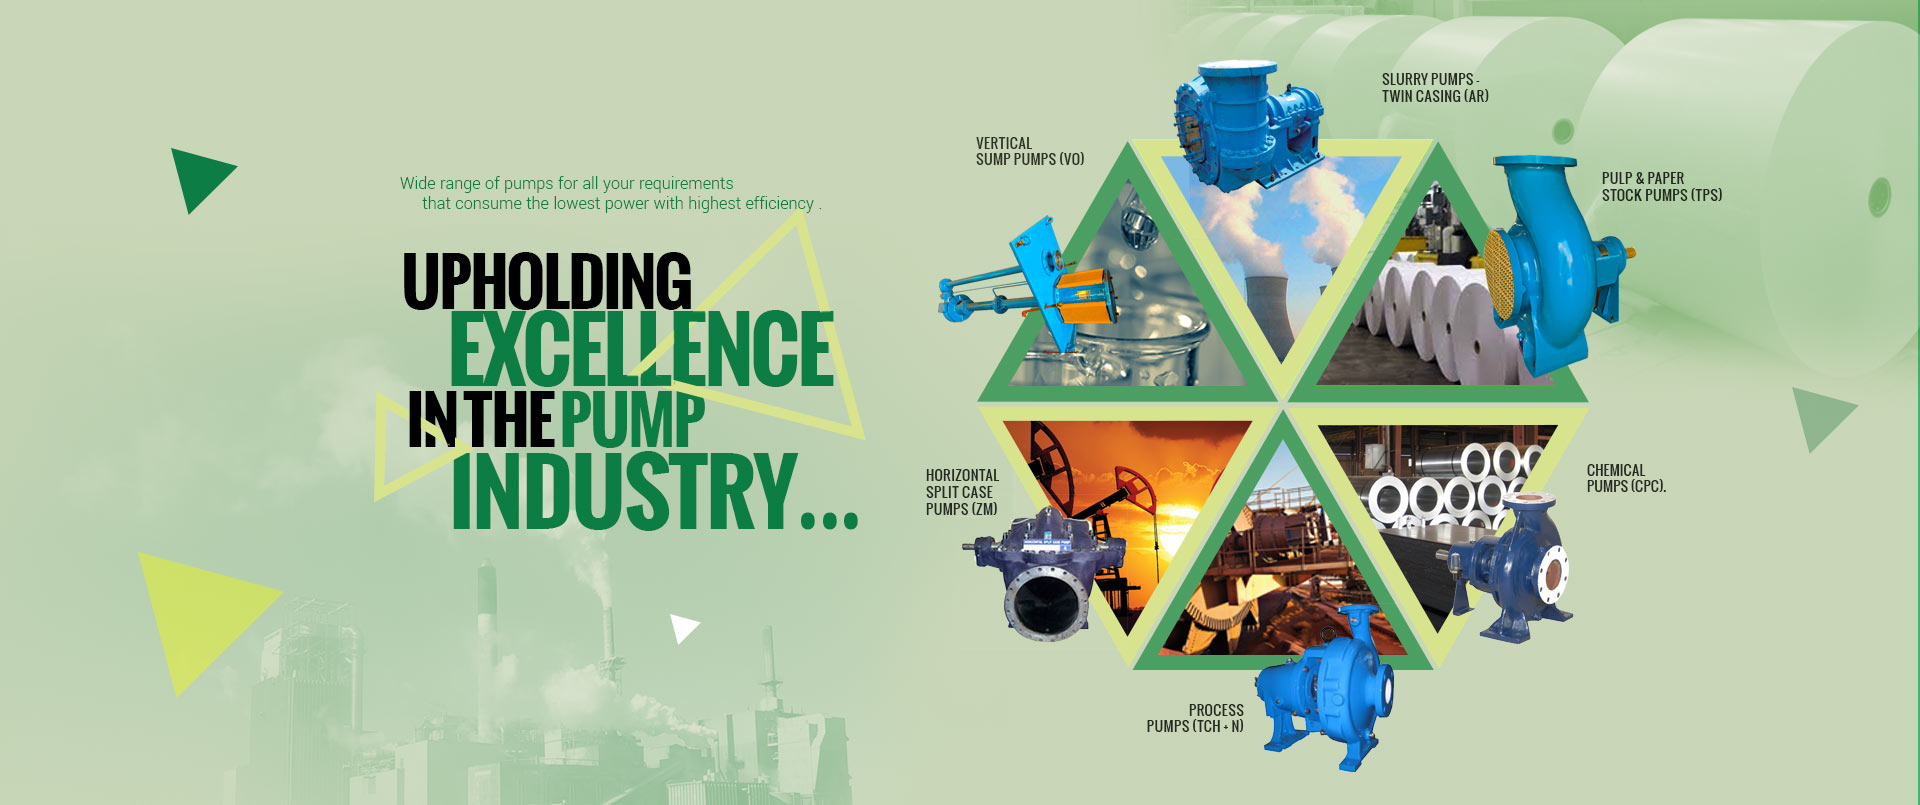 Industrial Pumps Manufacturers - Centrifugal Pump Suppliers